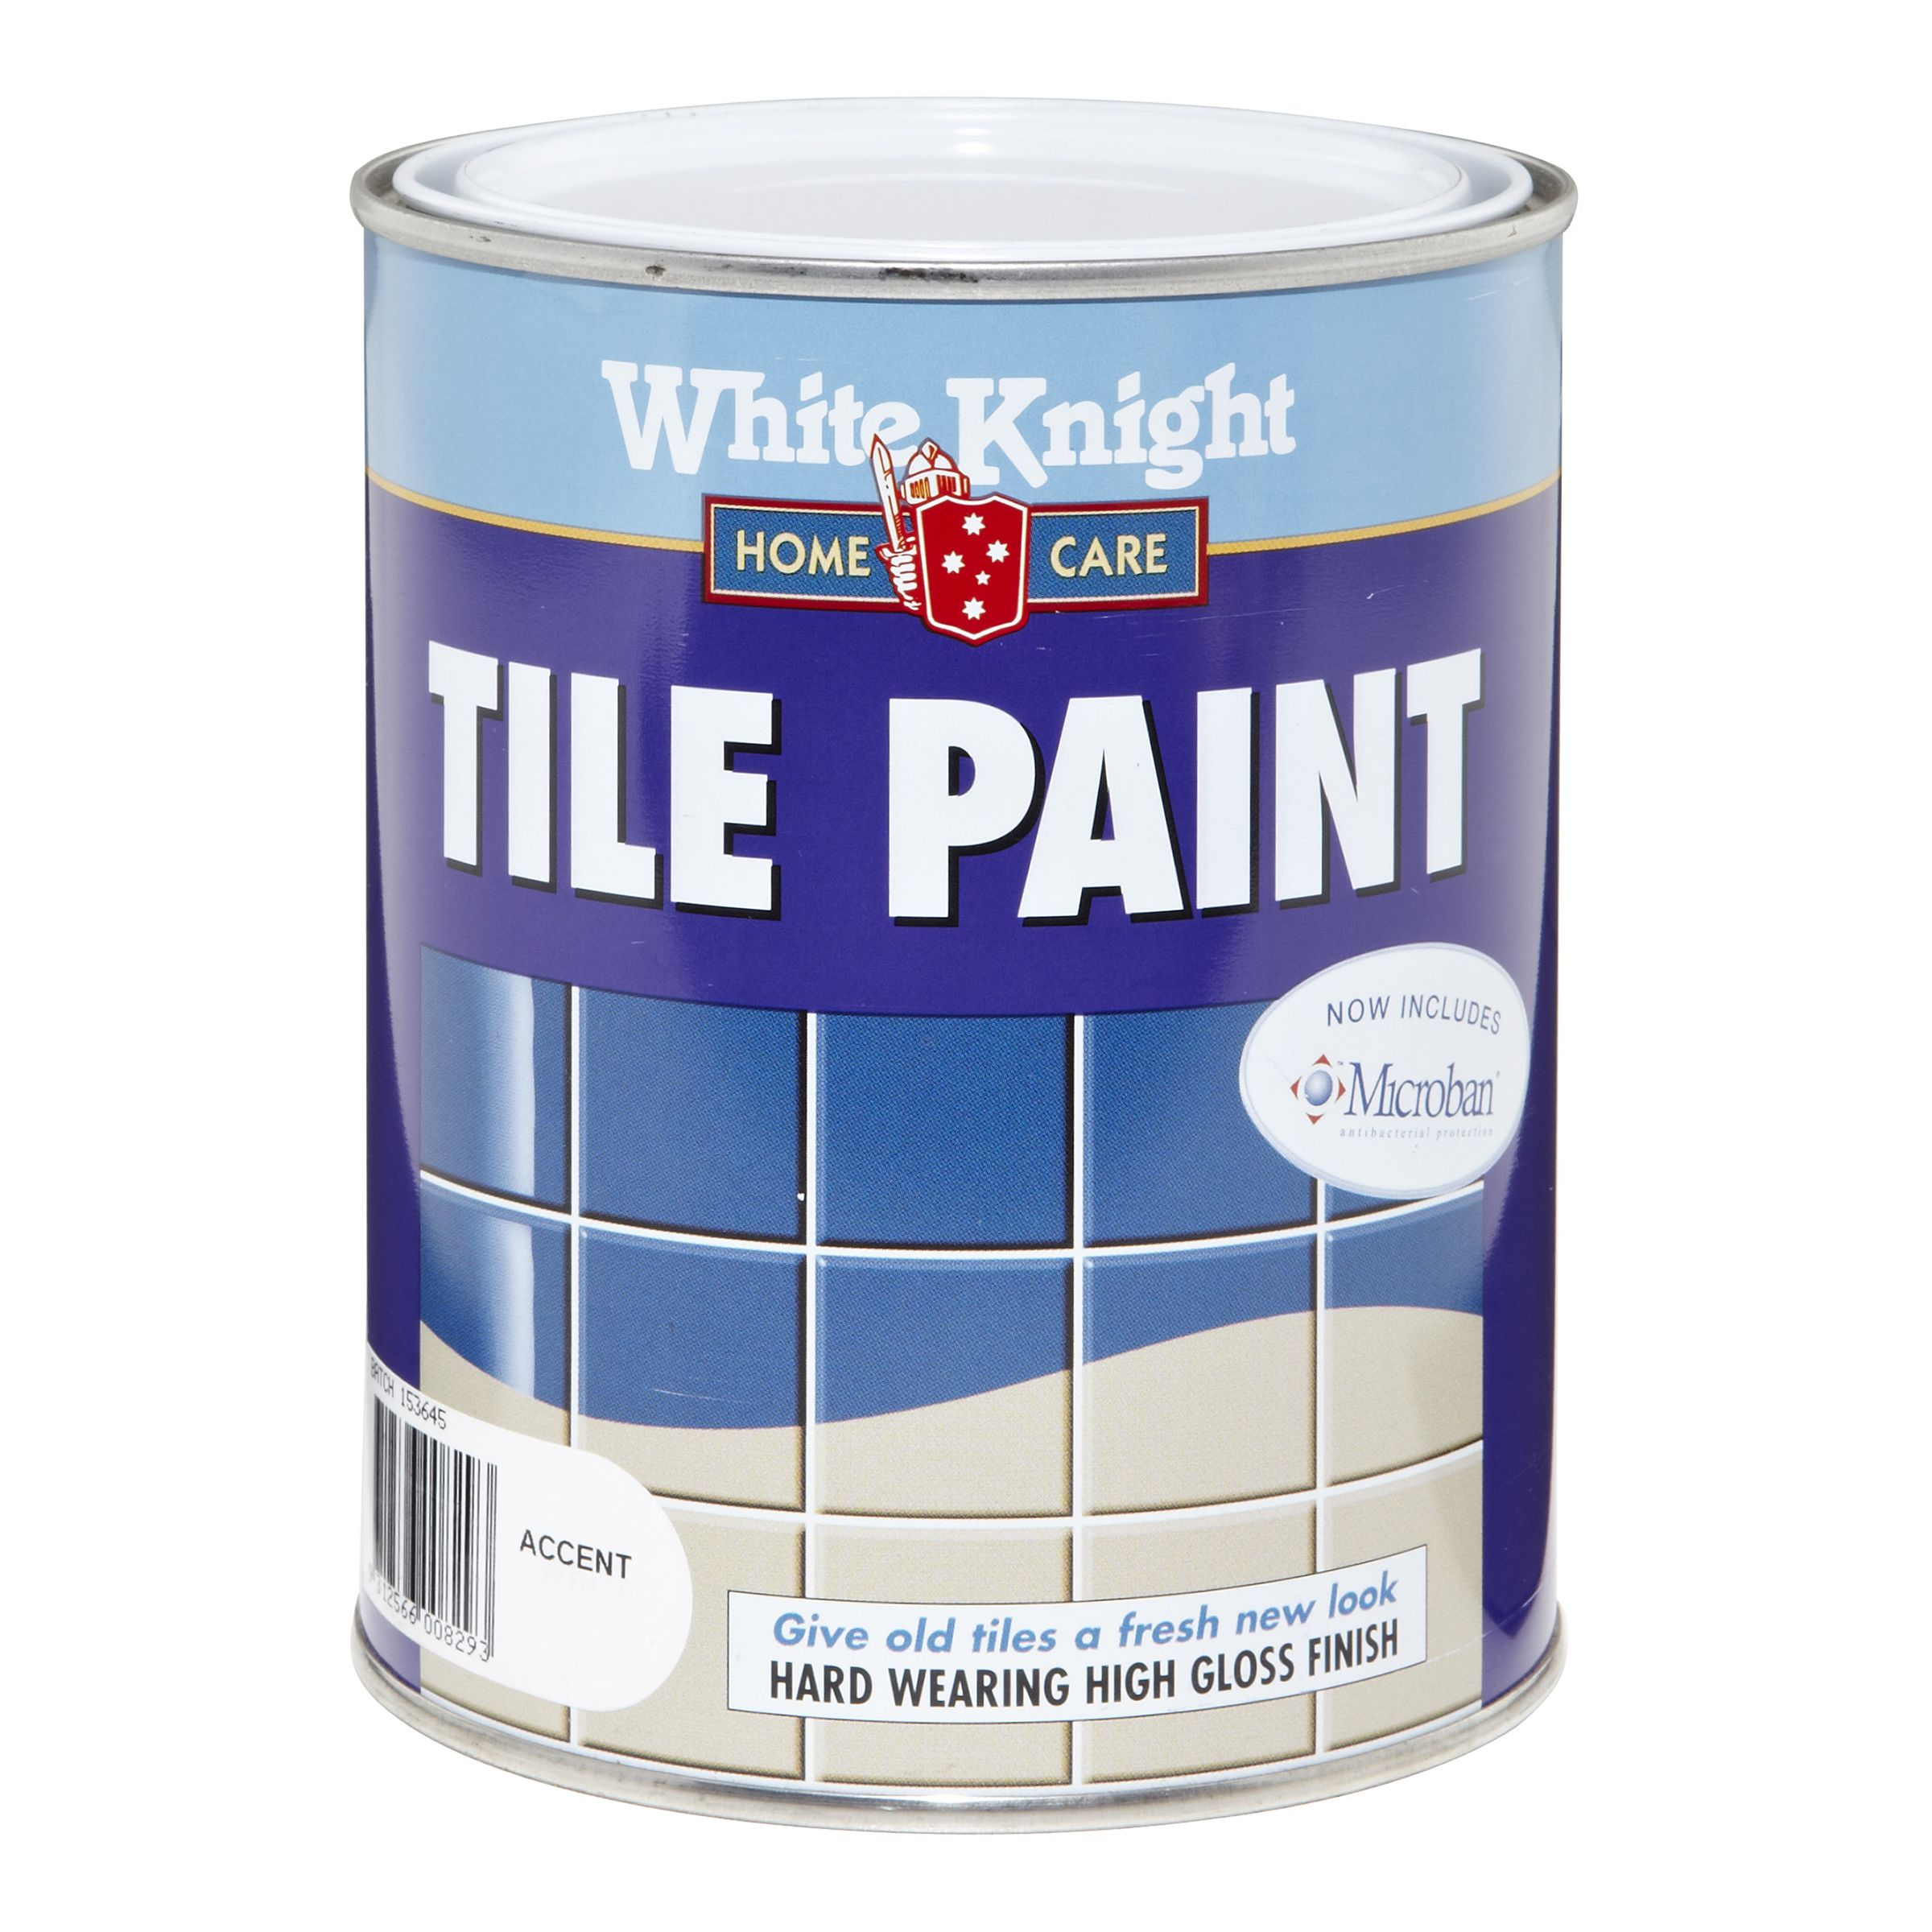 Bunnings Bath Paint Tile Paint White Knight 1l Accent Bunnings Warehouse